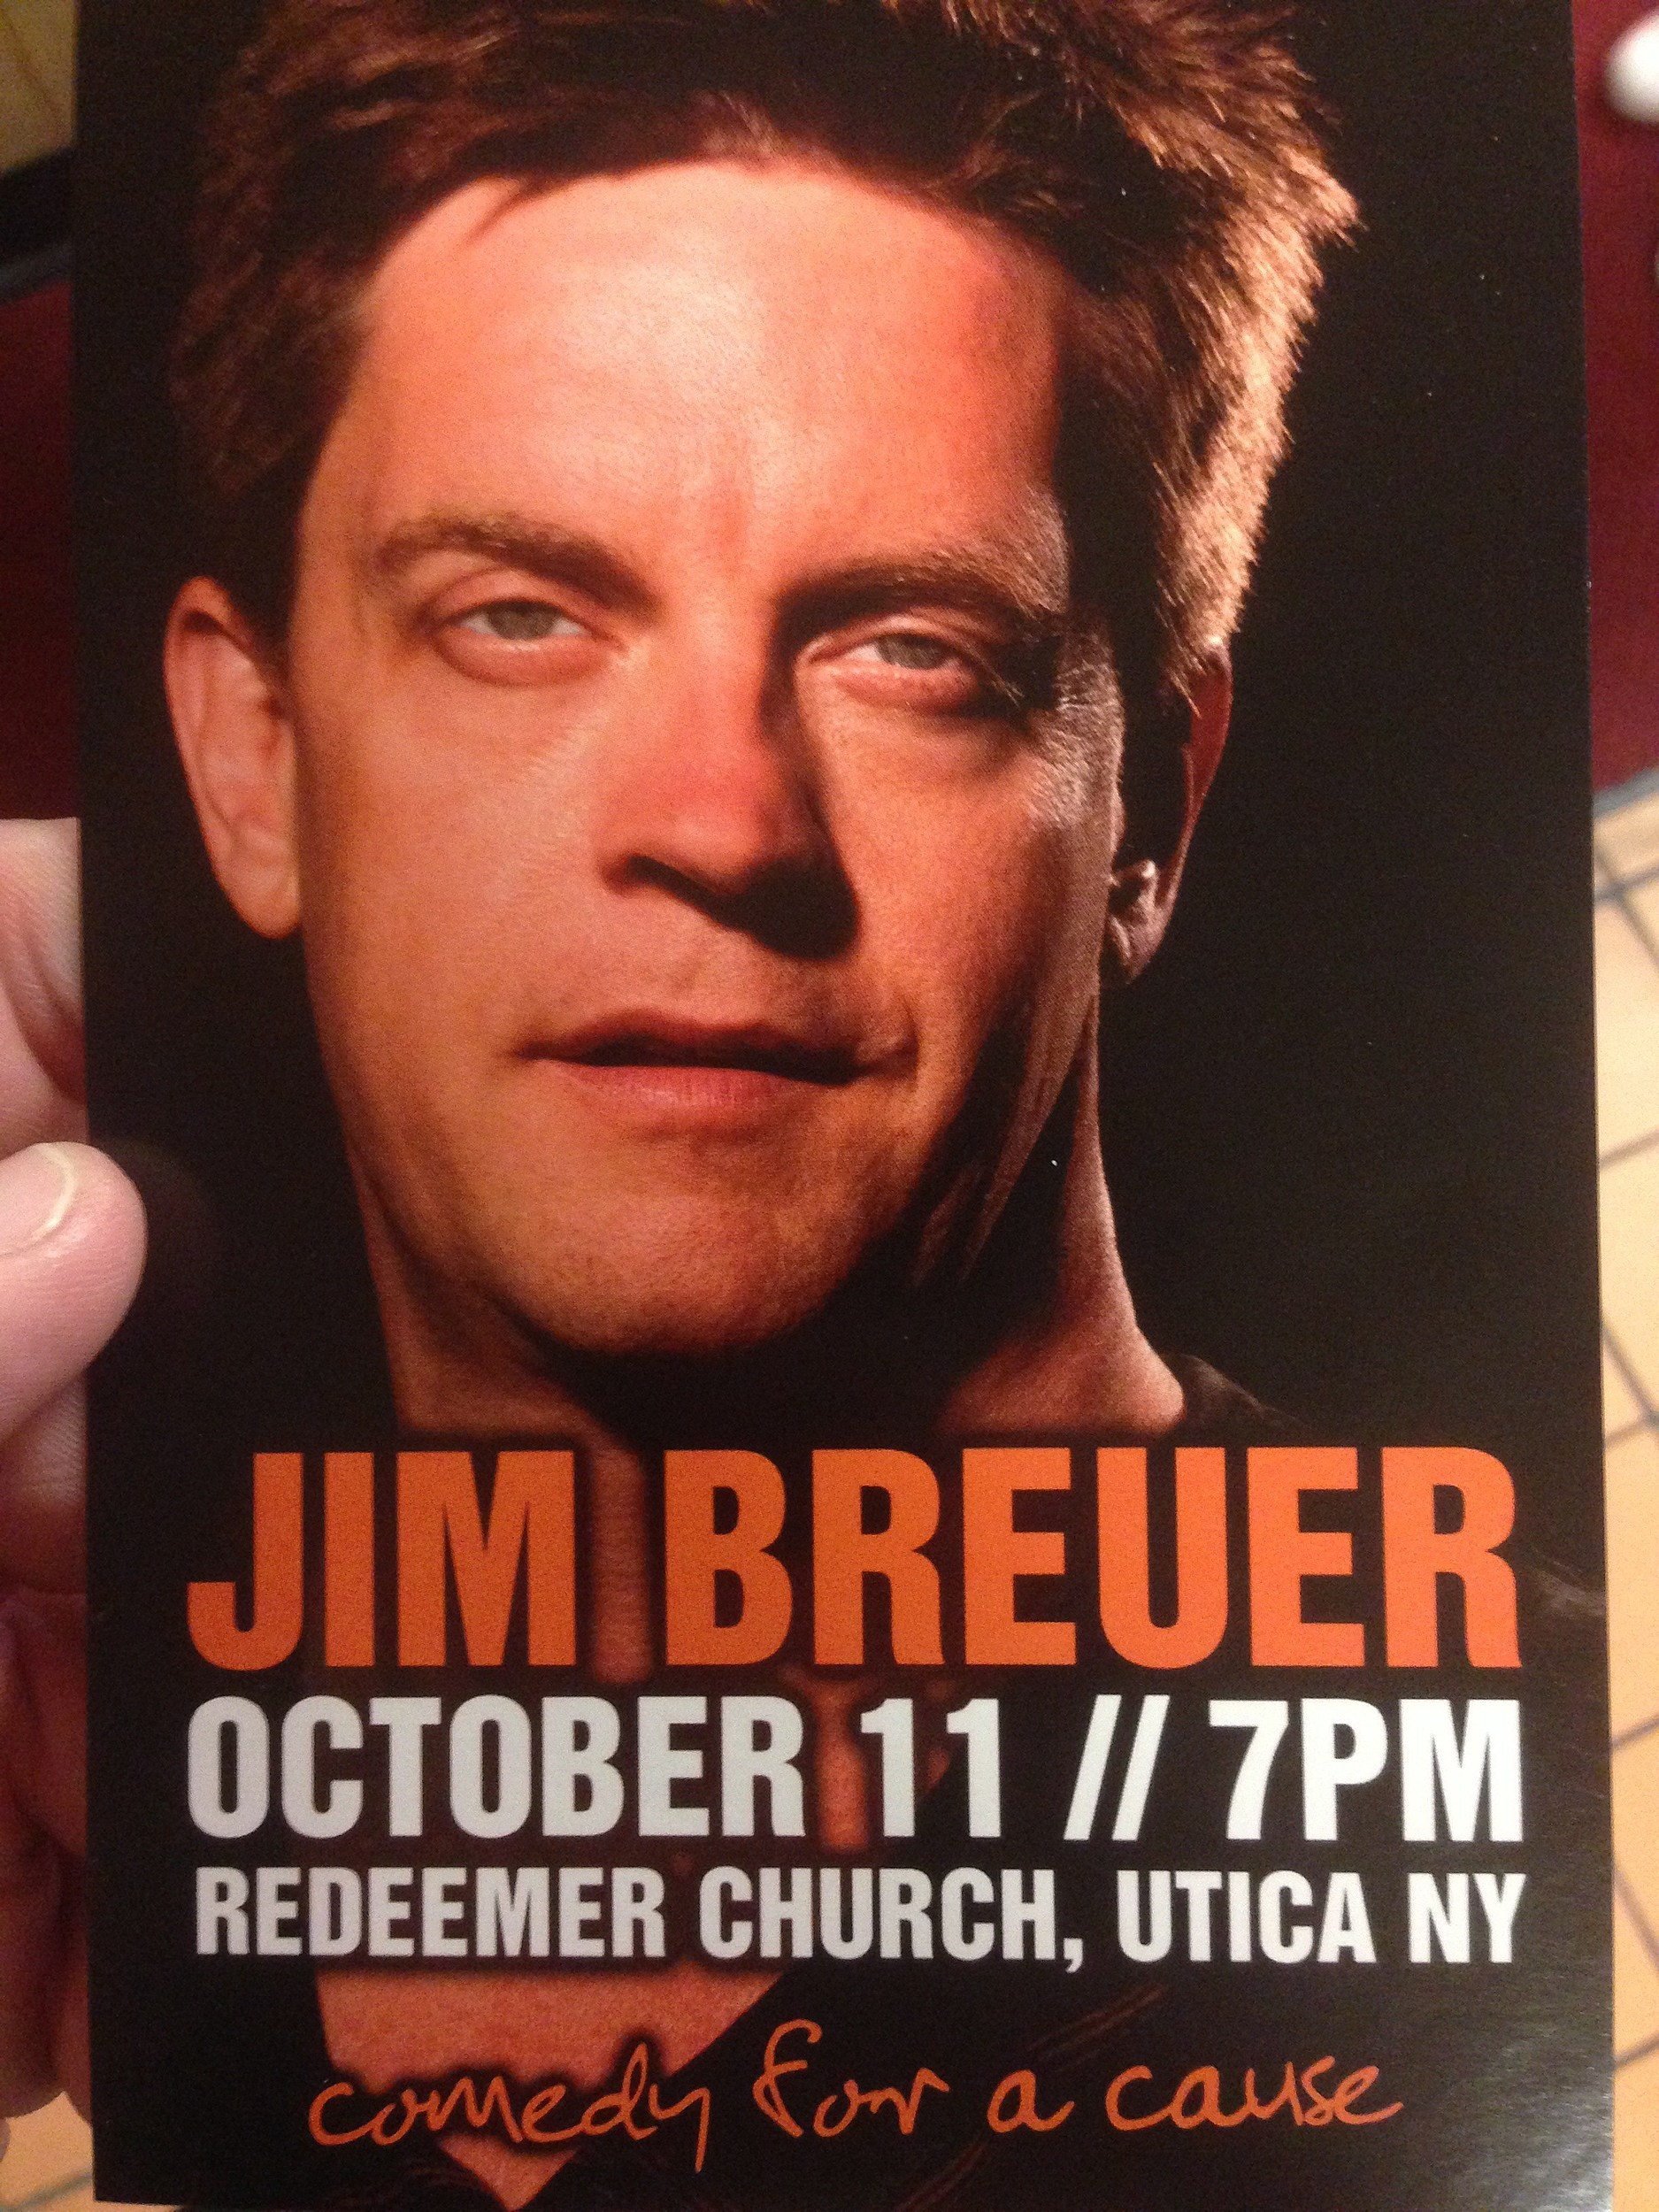 jim breuer goat boyjim breuer and the loud & rowdy, jim breuer about alcohol, jim breuer and rob halford, jim breuer metallica parody, jim breuer goat boy, jim breuer and laughter for all download, jim breuer brian johnson, jim breuer joe rogan, jim breuer full, jim breuer interviews metallica, jim breuer podcast, jim breuer party, jim breuer ac dc, jim breuer youtube, jim breuer metal impersonations, jim breuer metallica, jim breuer на русском, jim breuer old school, jim breuer slayer, jim breuer metallica interview